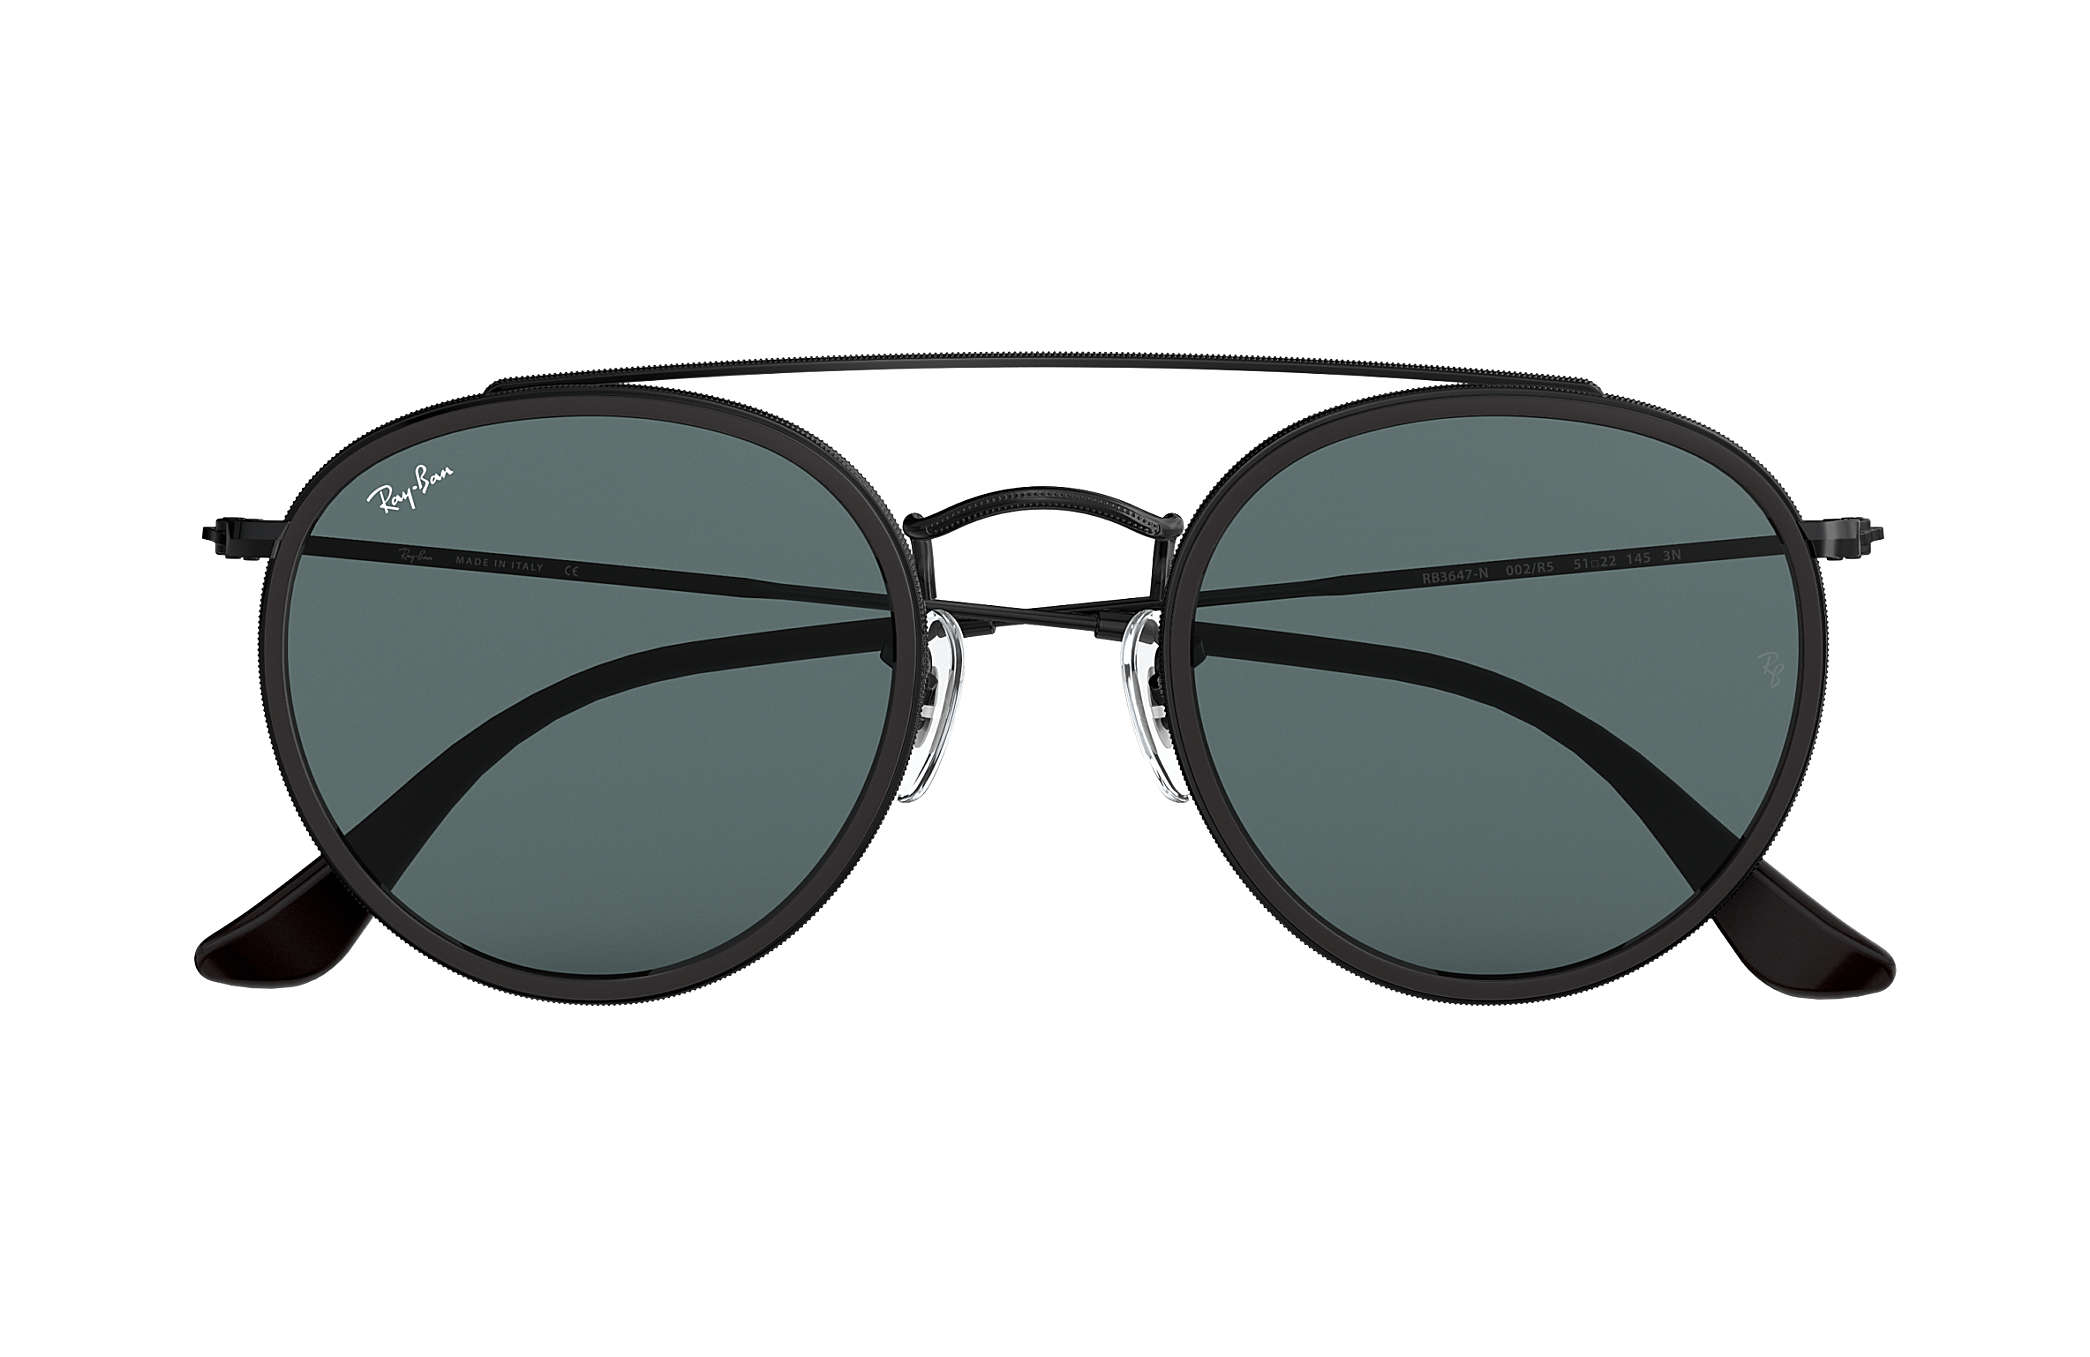 Ray-Ban Round Double Bridge RB3647N Black - Metal - Blue Gray Lenses ... b5bf228475